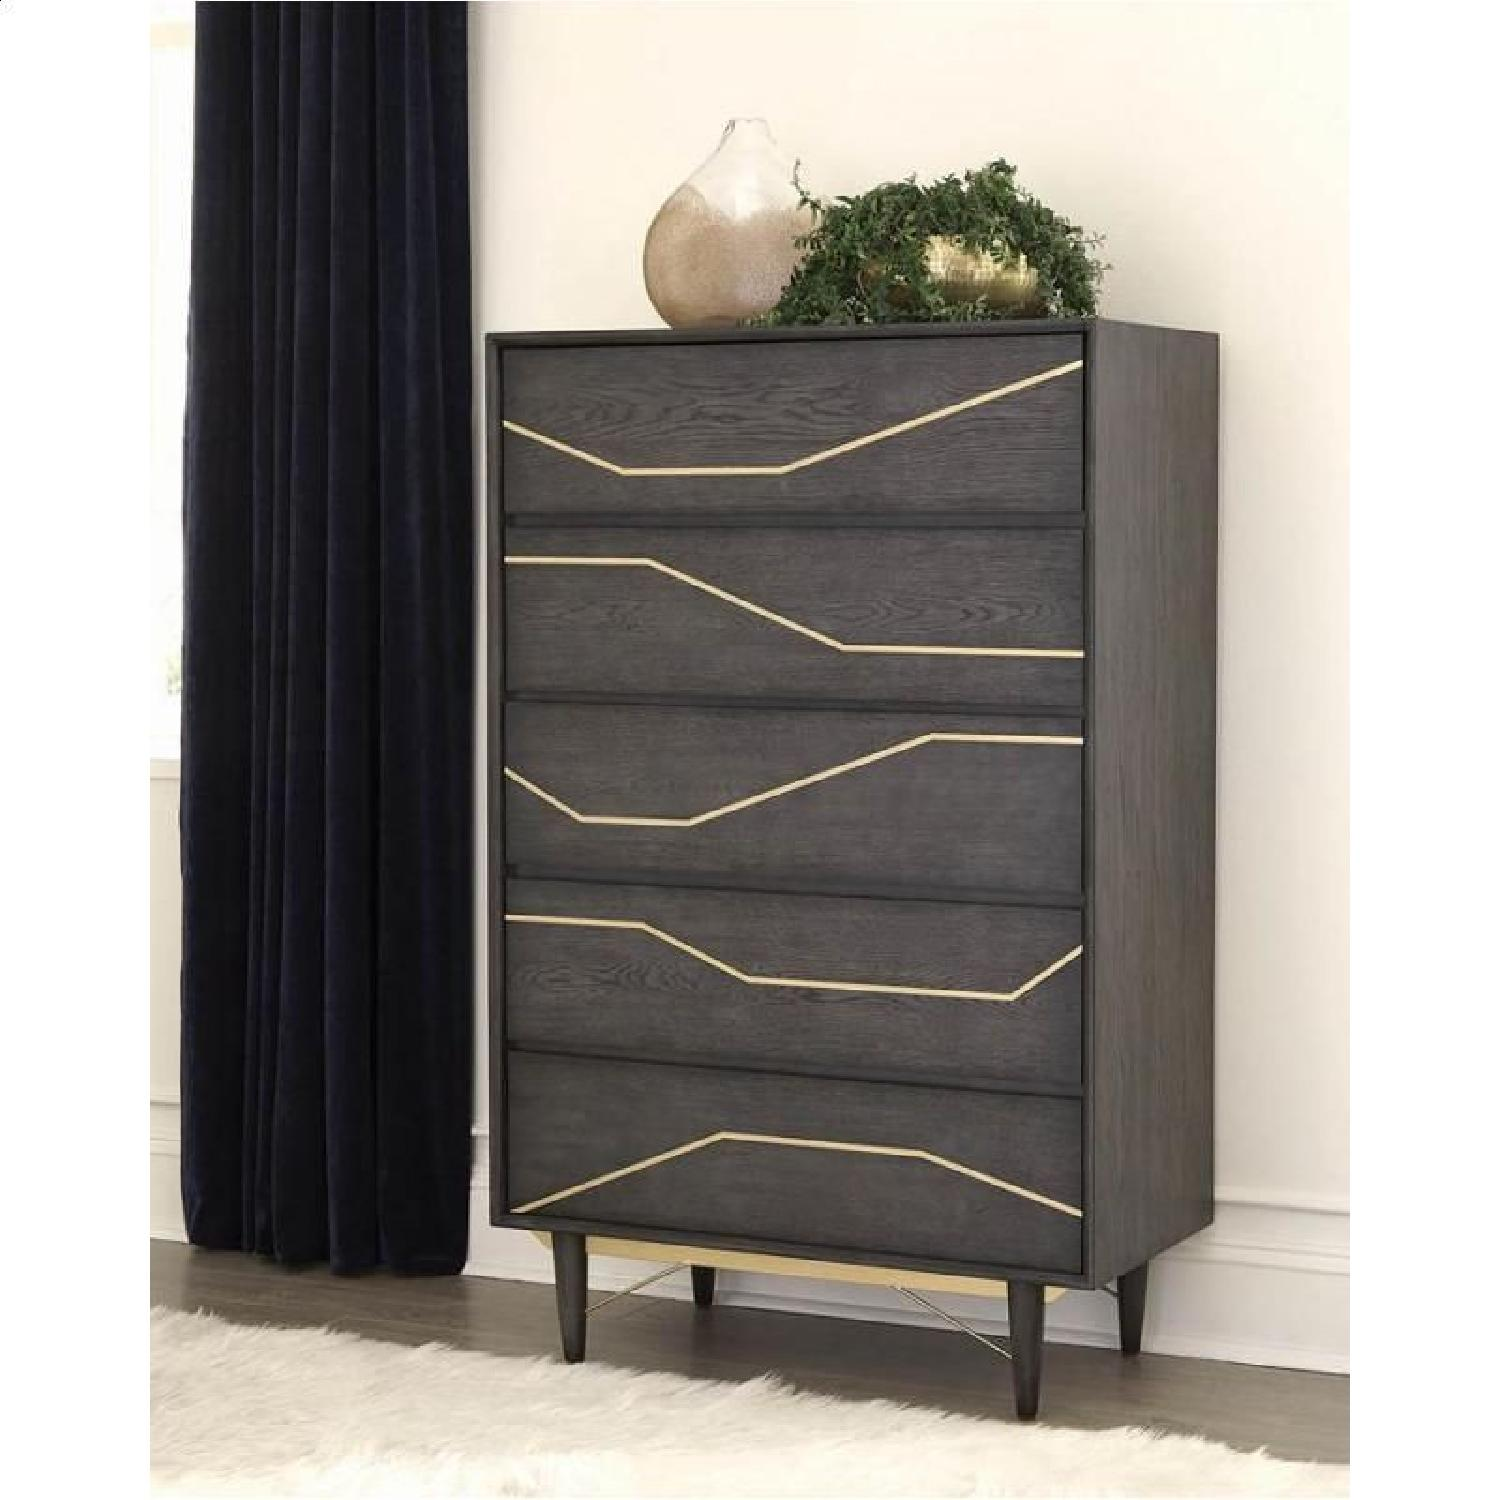 Modern Dresser in Graphite Finish w/ Gold Color Inlay - image-5